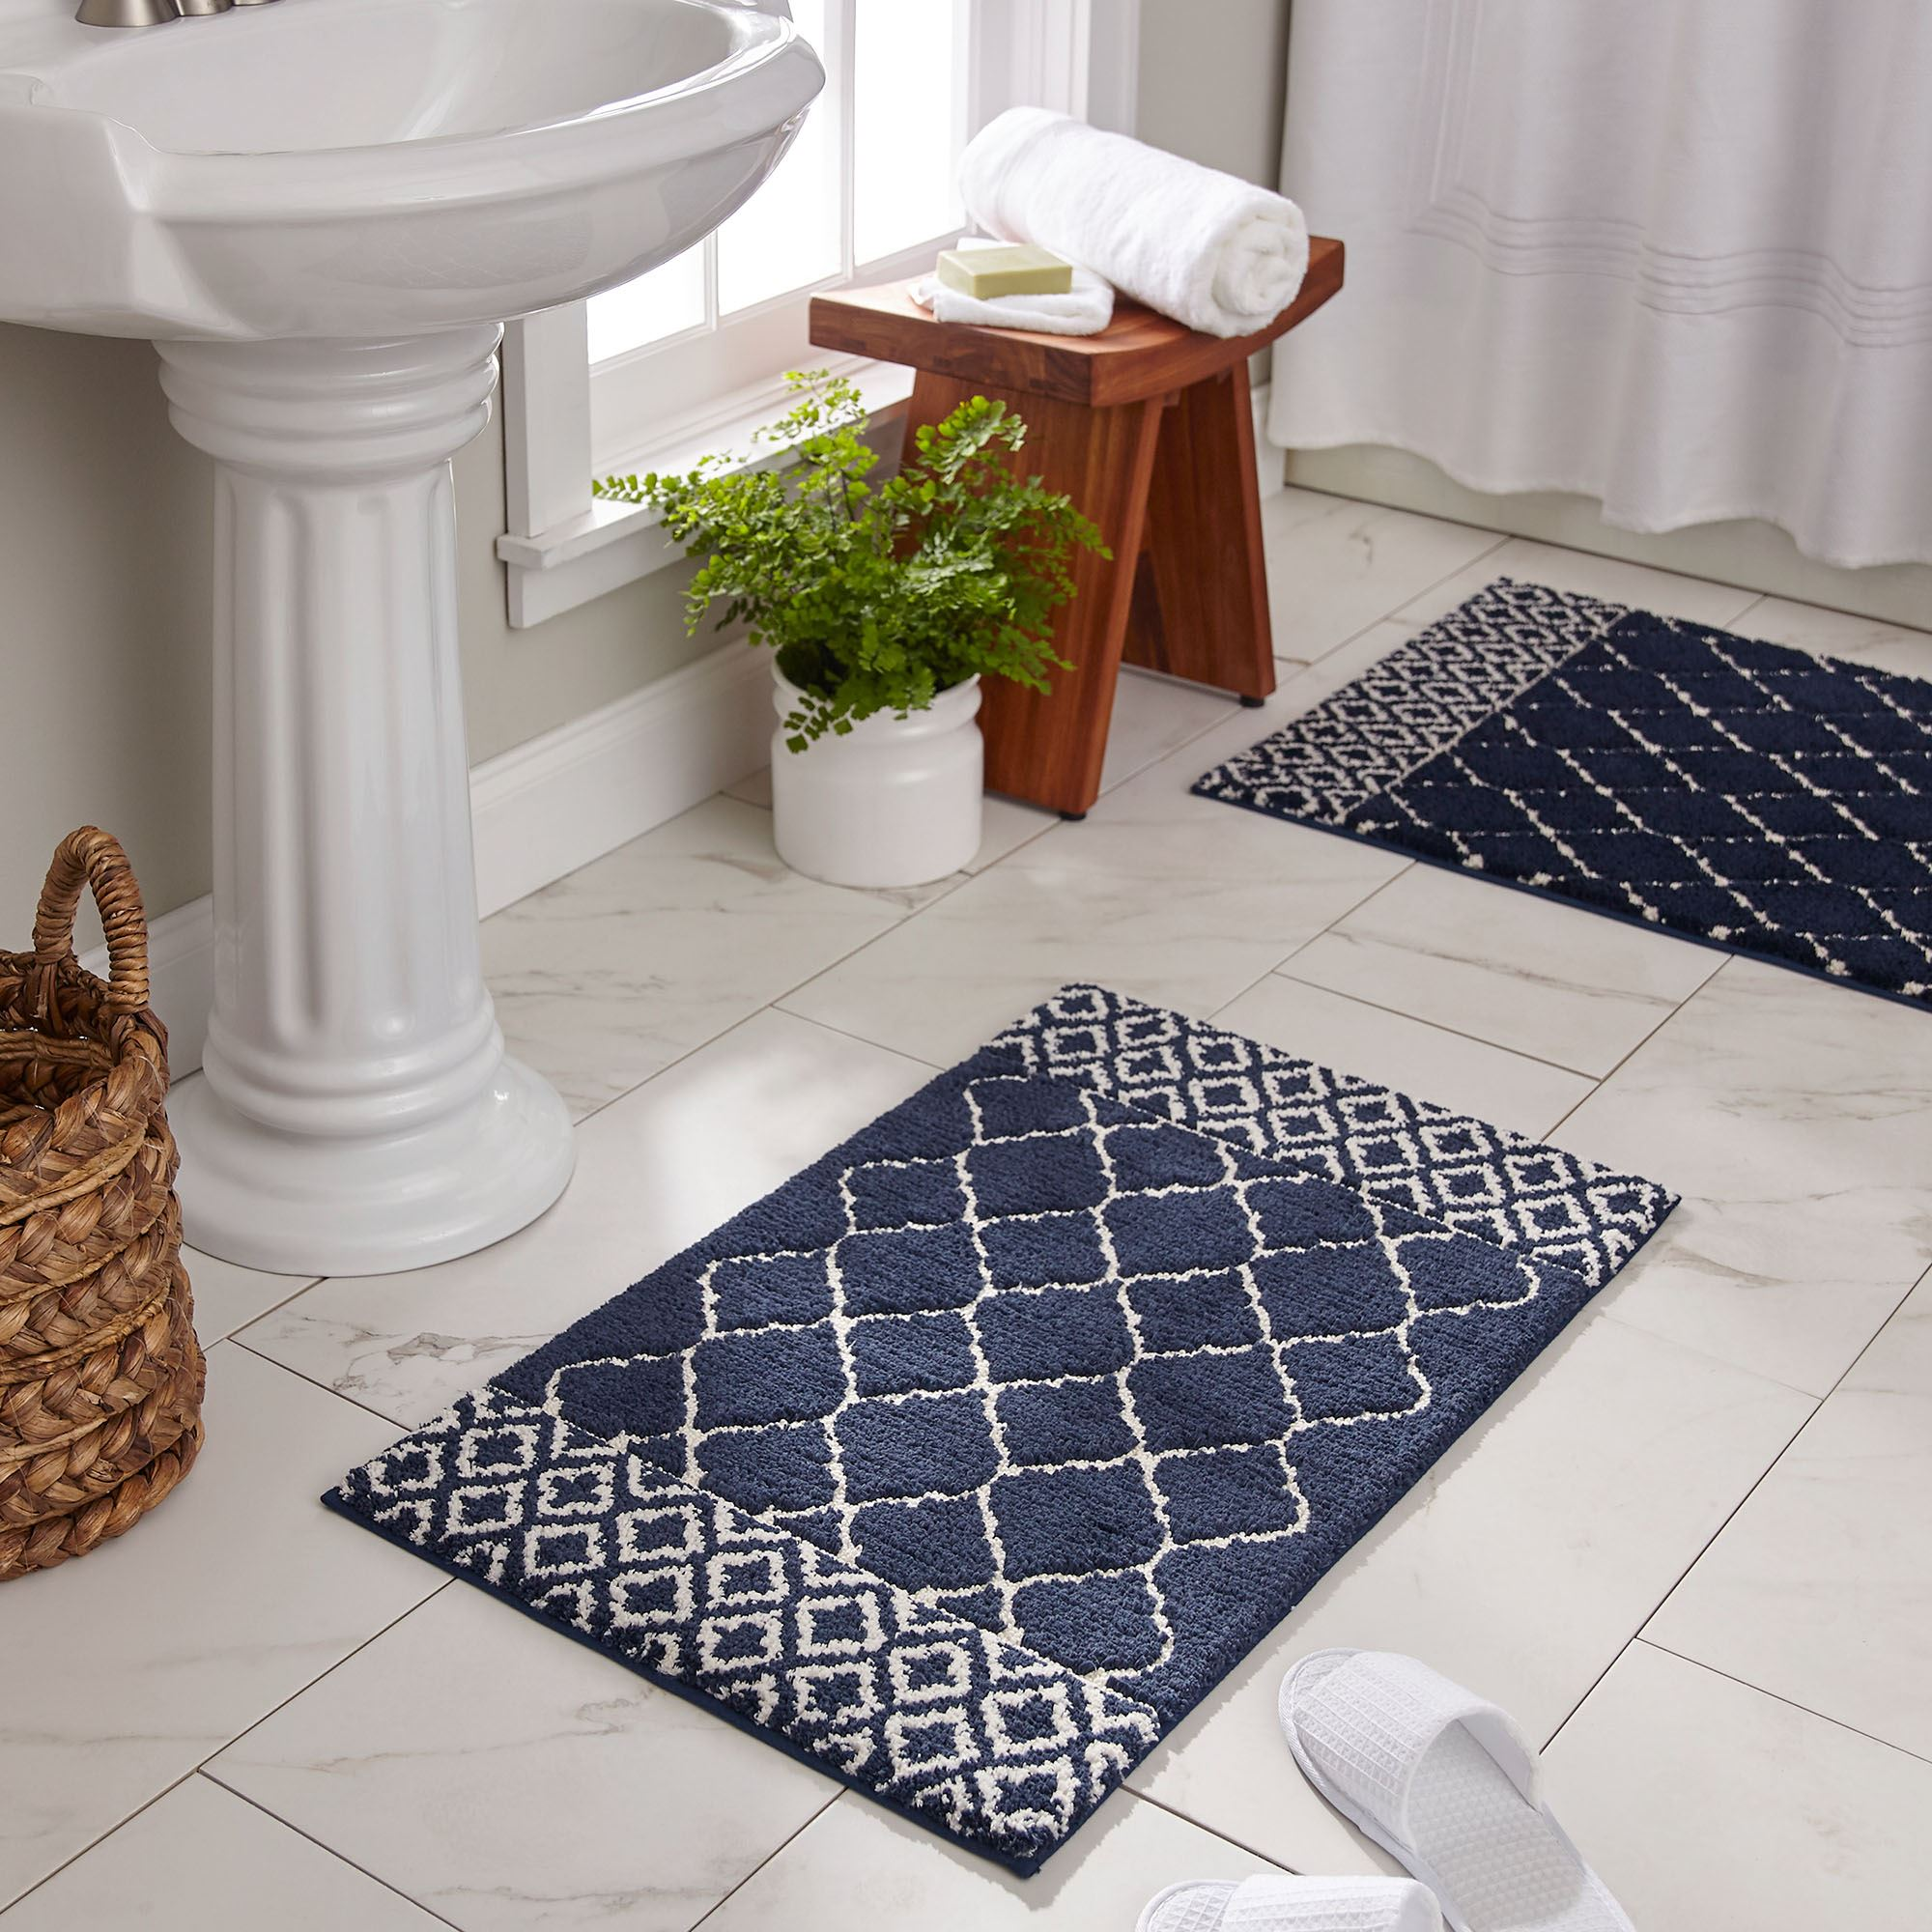 Fountainebleau Quatrefoil Nonskid Bath Rugs